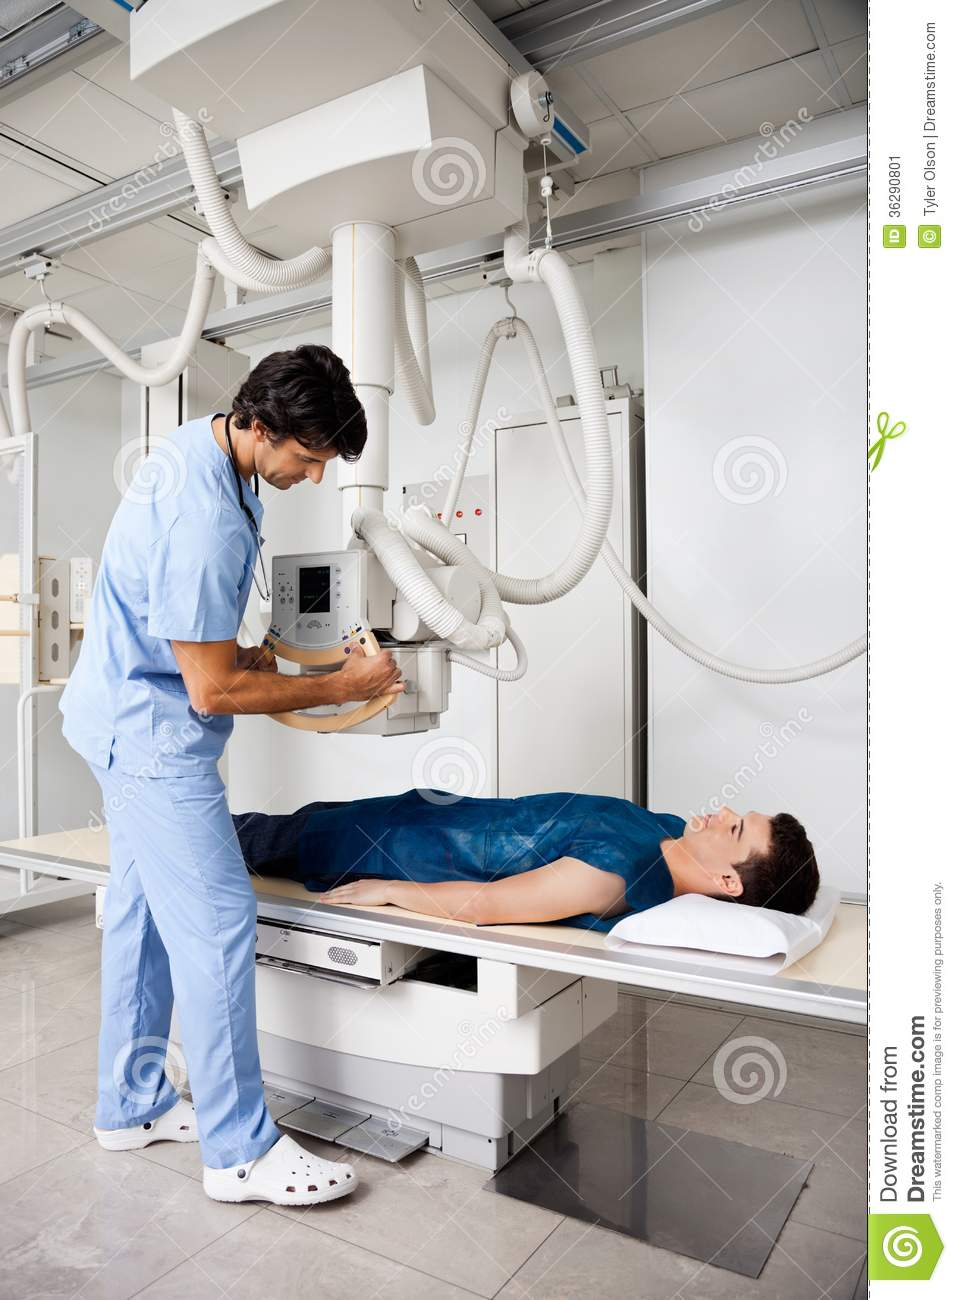 technician taking patient u0026 39 s x-ray stock image